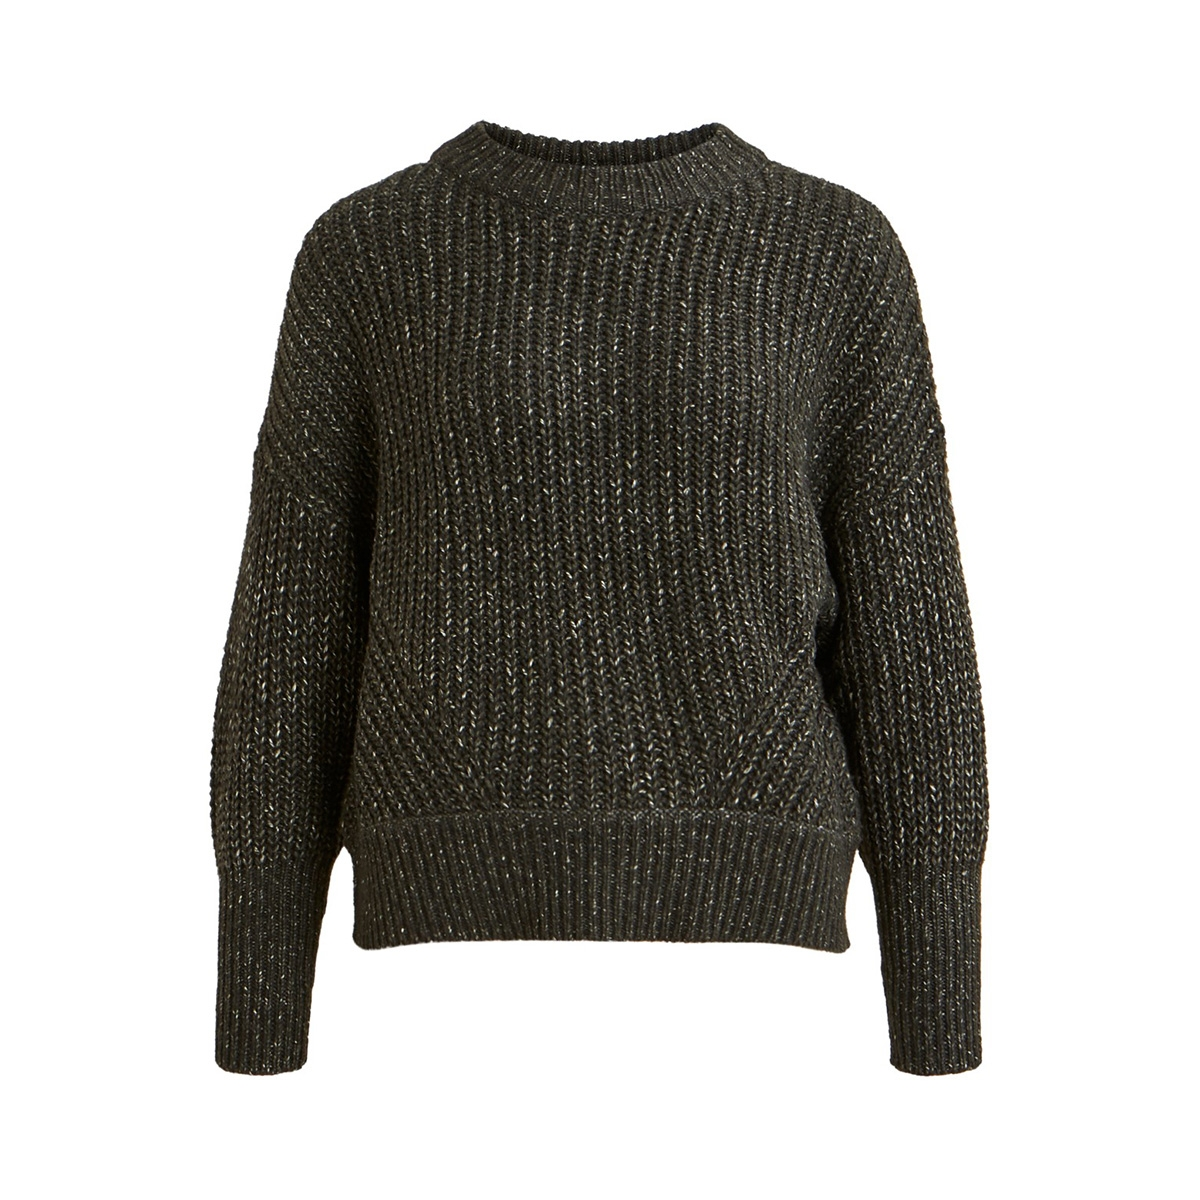 objmelody camper l/s knit pullover 23029953 object trui forest night/melange